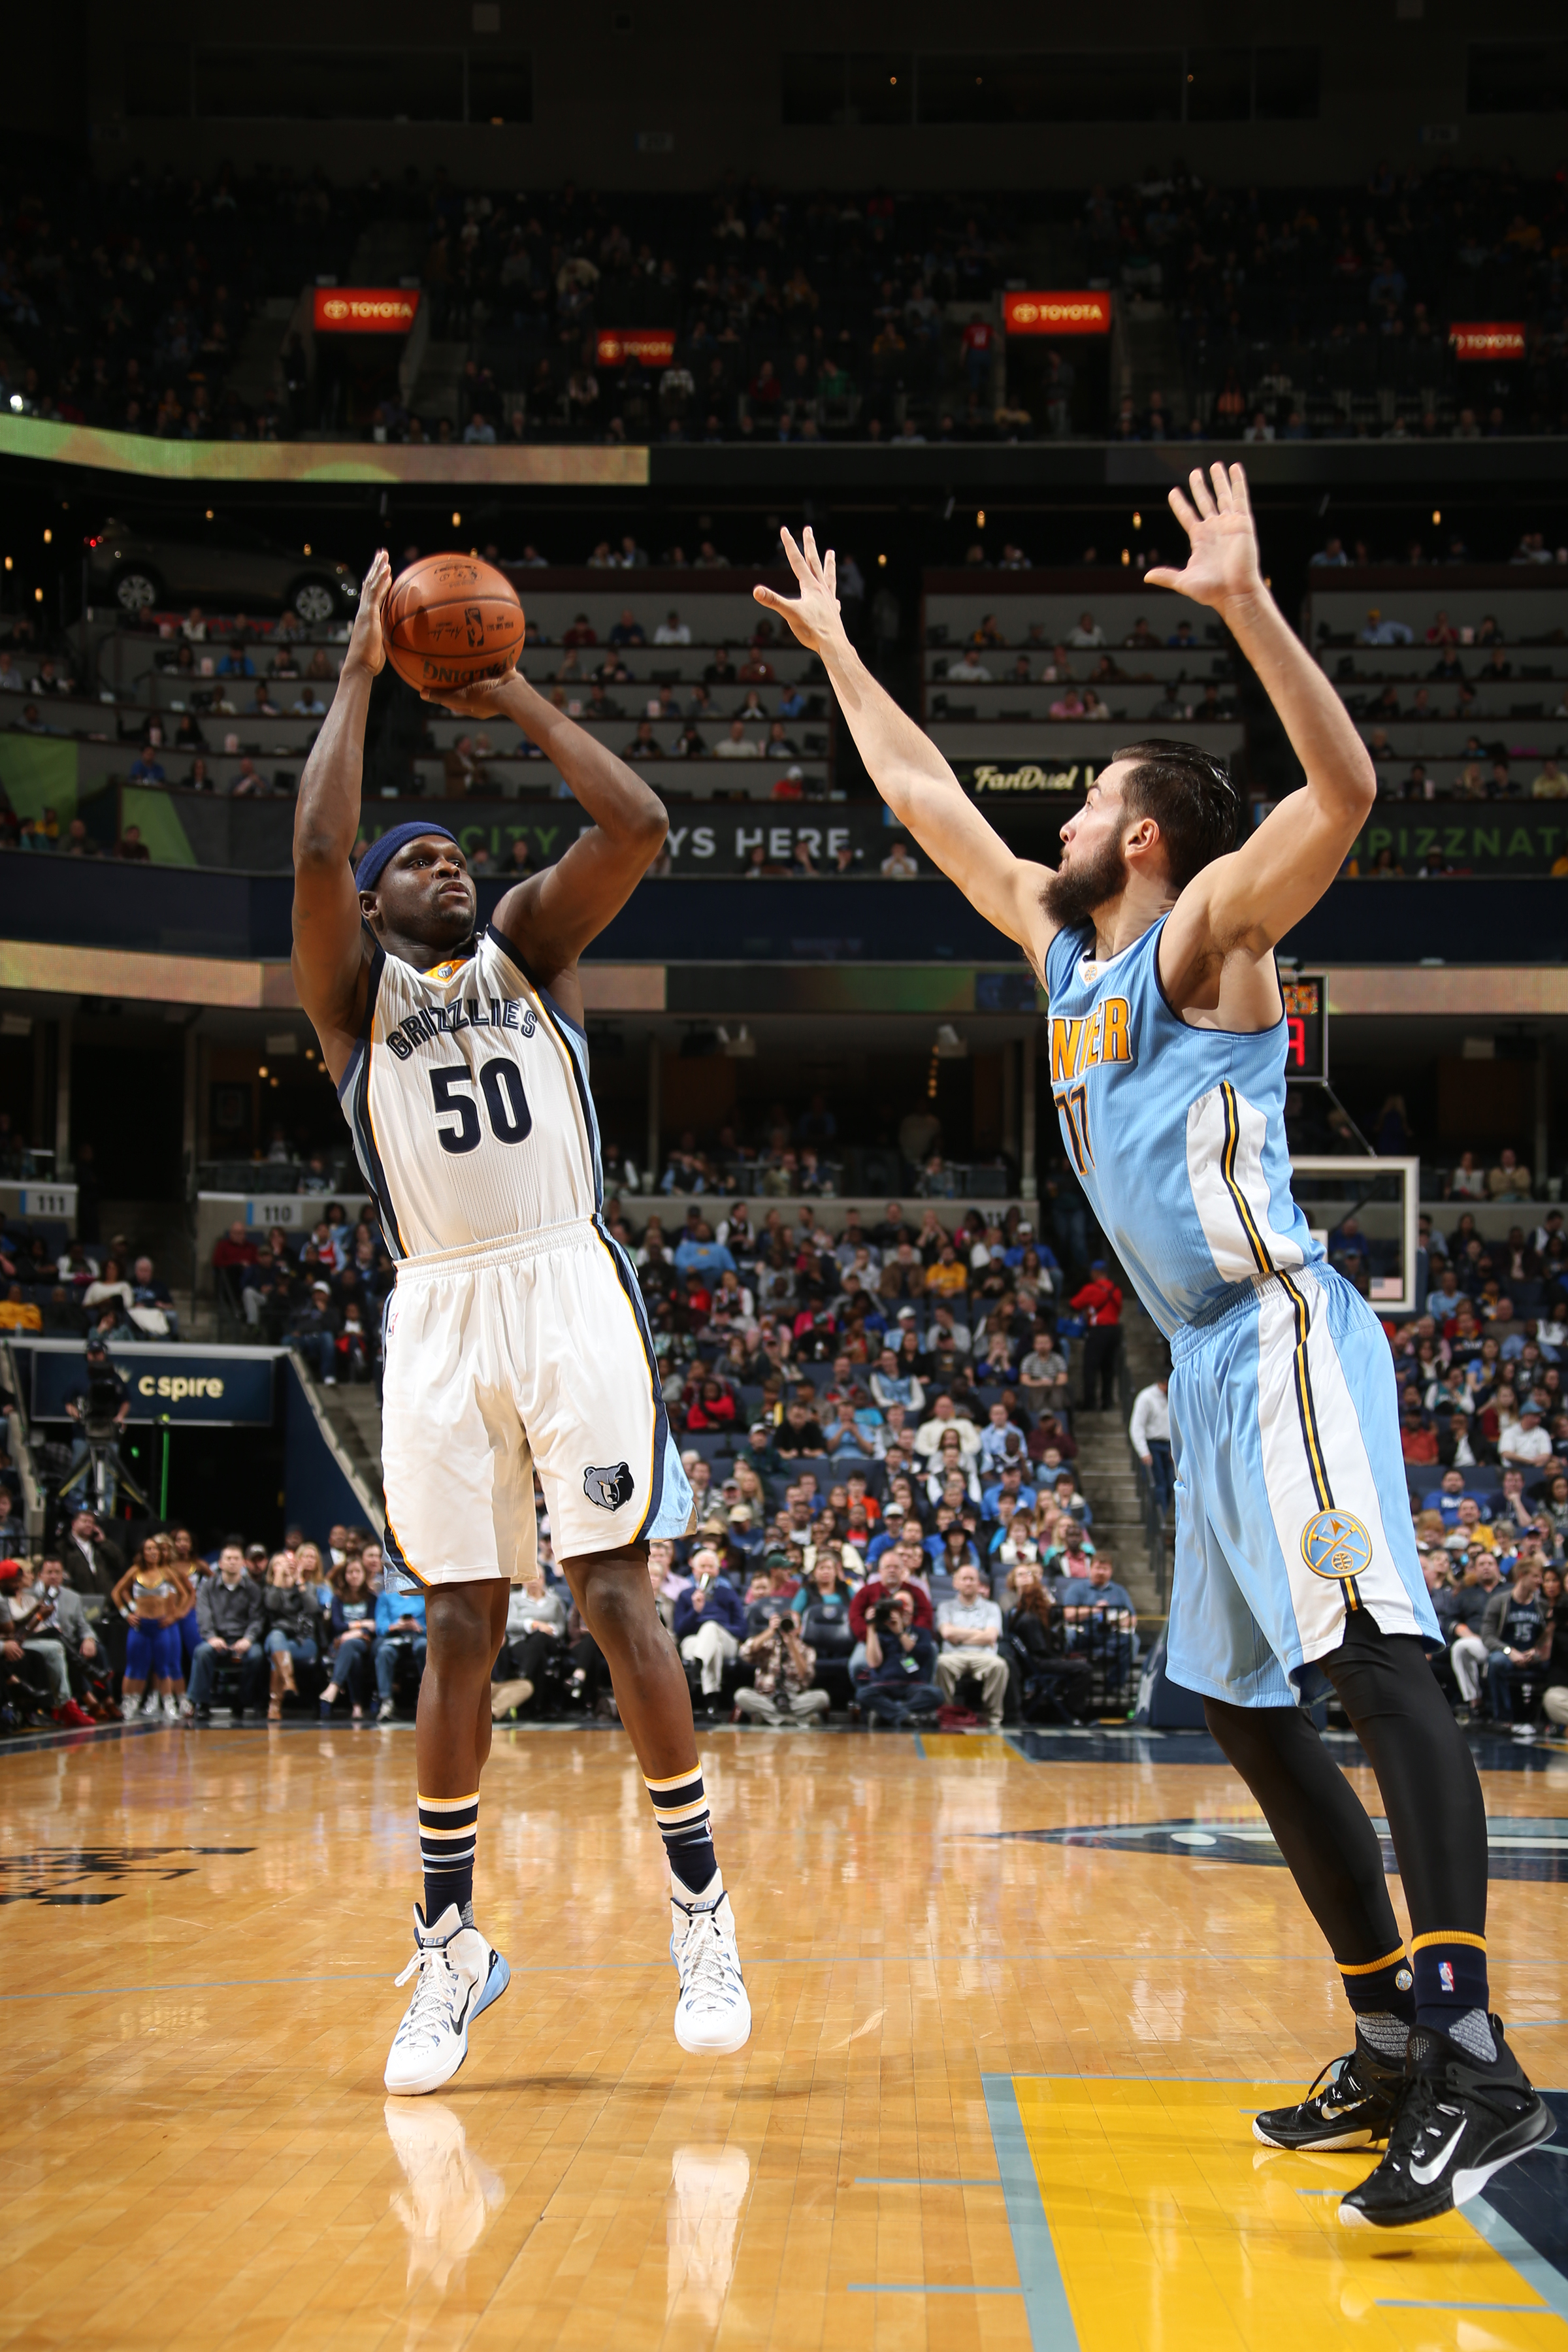 MEMPHIS, TN - JANUARY 8:  Zach Randolph #50 of the Memphis Grizzlies shoots the ball against the Denver Nuggets on January 8, 2016 at FedExForum in Memphis, Tennessee. (Photo by Joe Murphy/NBAE via Getty Images)